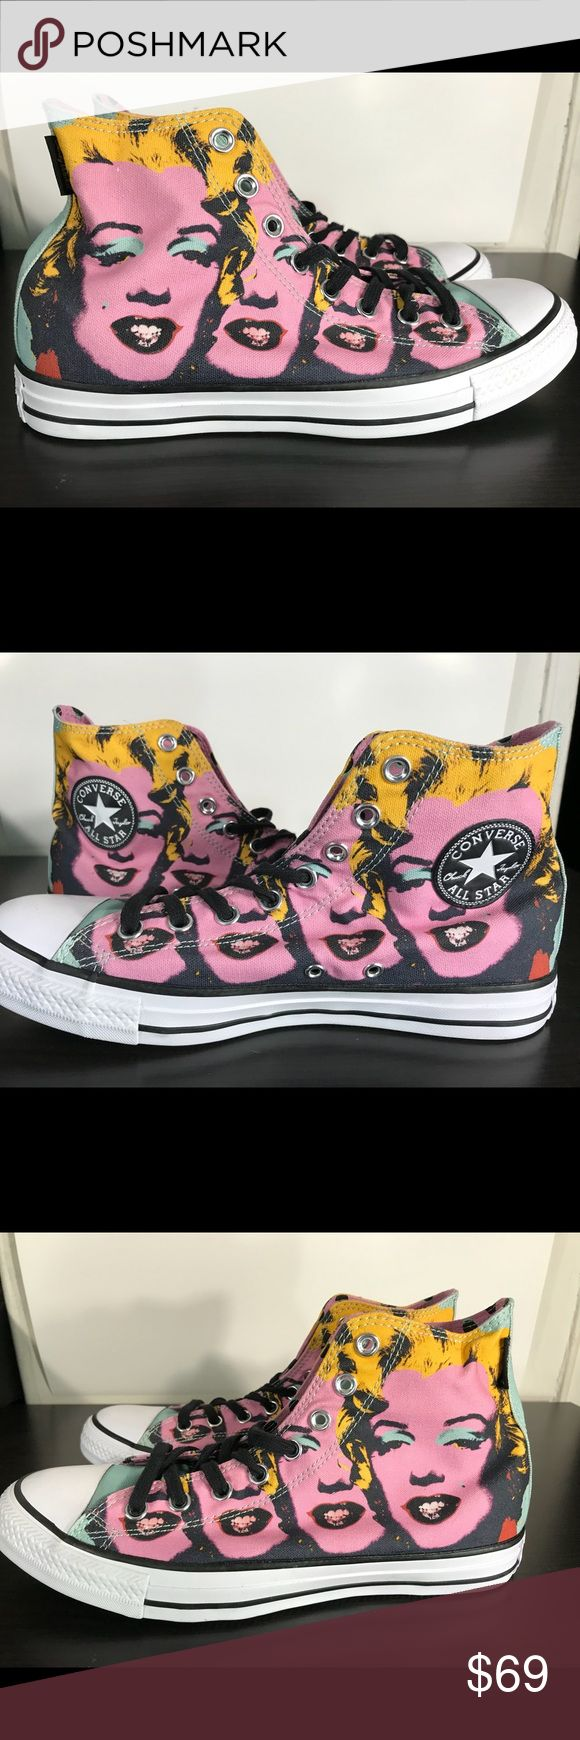 Chuck Taylor All Star Andy Warhol Marilyn Monroe Hello Everybody!!    I'm selling a pair of Andy Warhol Chuck Taylor Converse with the original box.    Men's Size 8/Women's size 10    Style: 153839C   10/10 condition (New With Box, Lid removed)    If you have any questions at all, please feel free to ask!      Thank you for looking and enjoy your day!!! Converse Shoes Sneakers